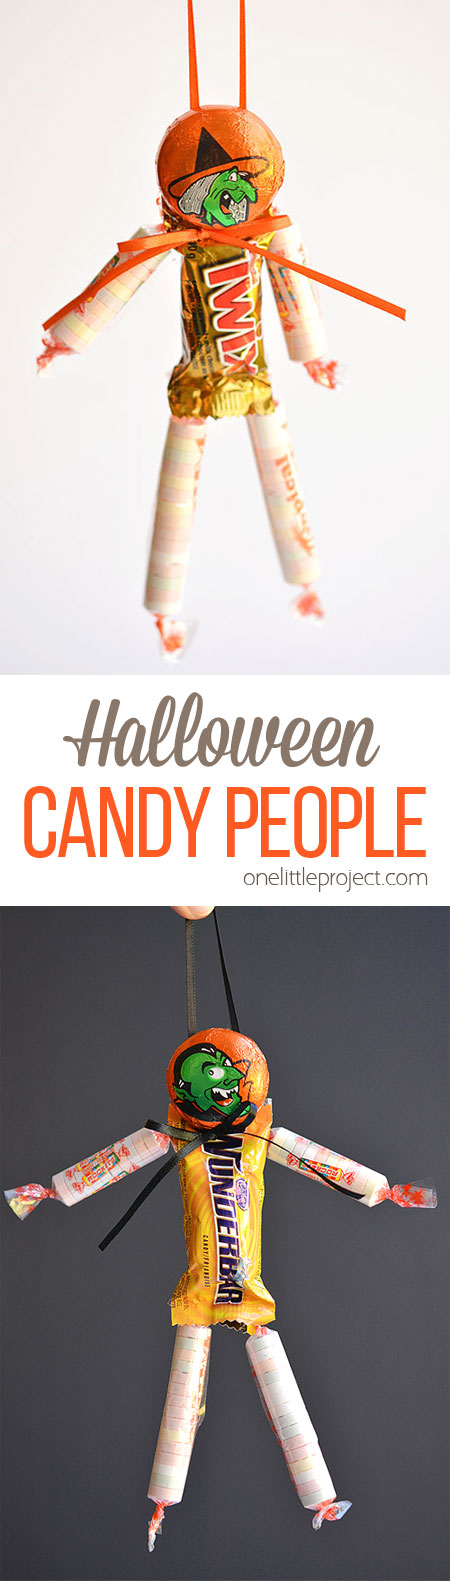 These Halloween candy people are such an ADORABLE and easy treat idea to send to school or give out as party favours! And it's easy to make them peanut free and school safe. So cute!